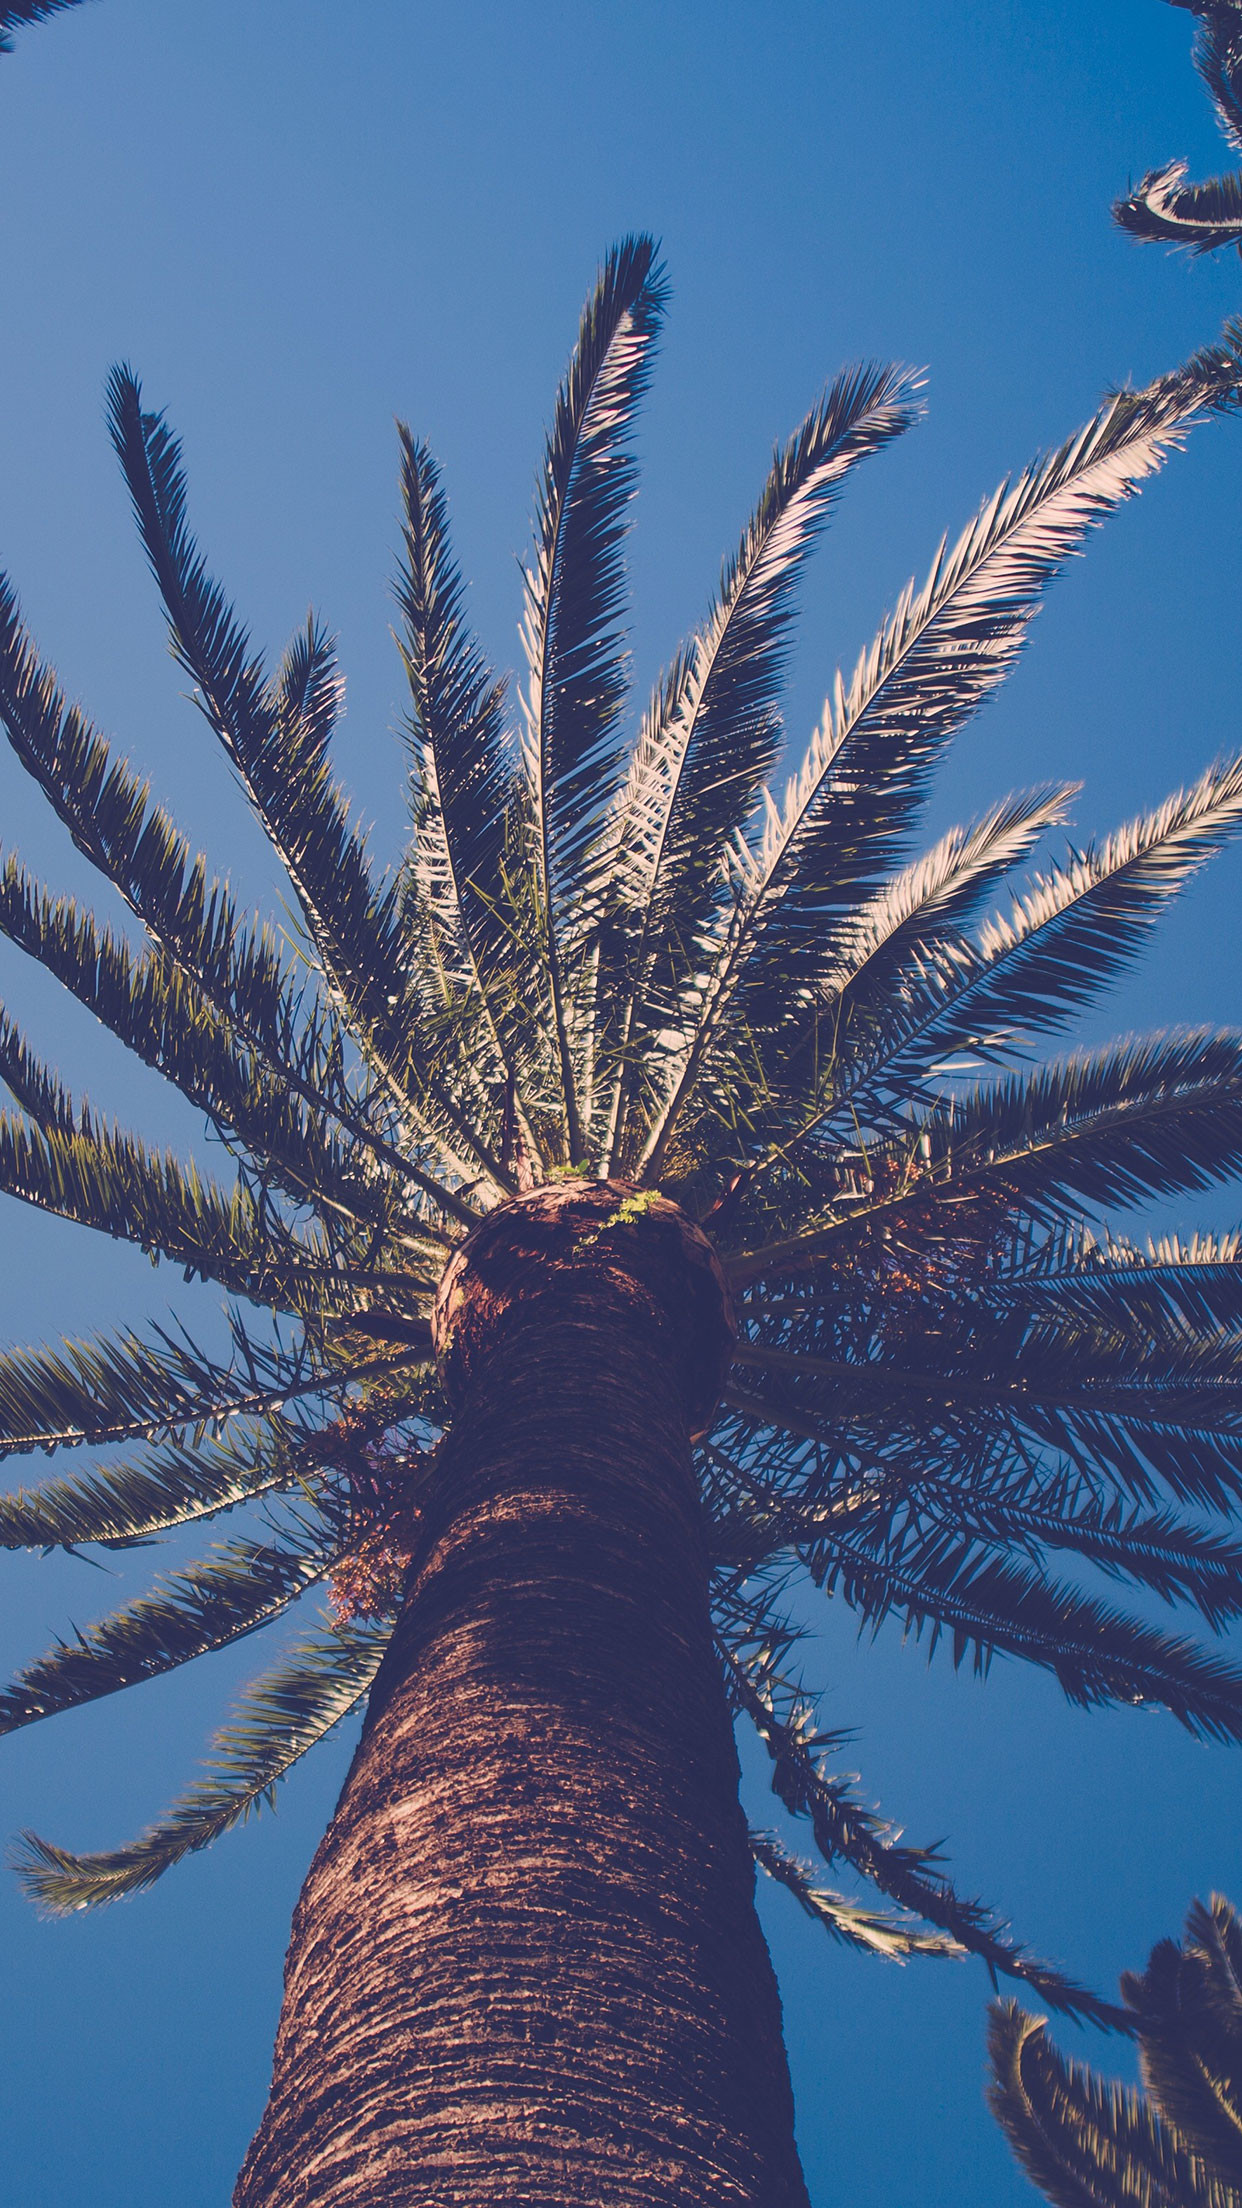 Palm Tree Nature Wallpaper - Iphone 8 Wallpapers Palm Tree - HD Wallpaper